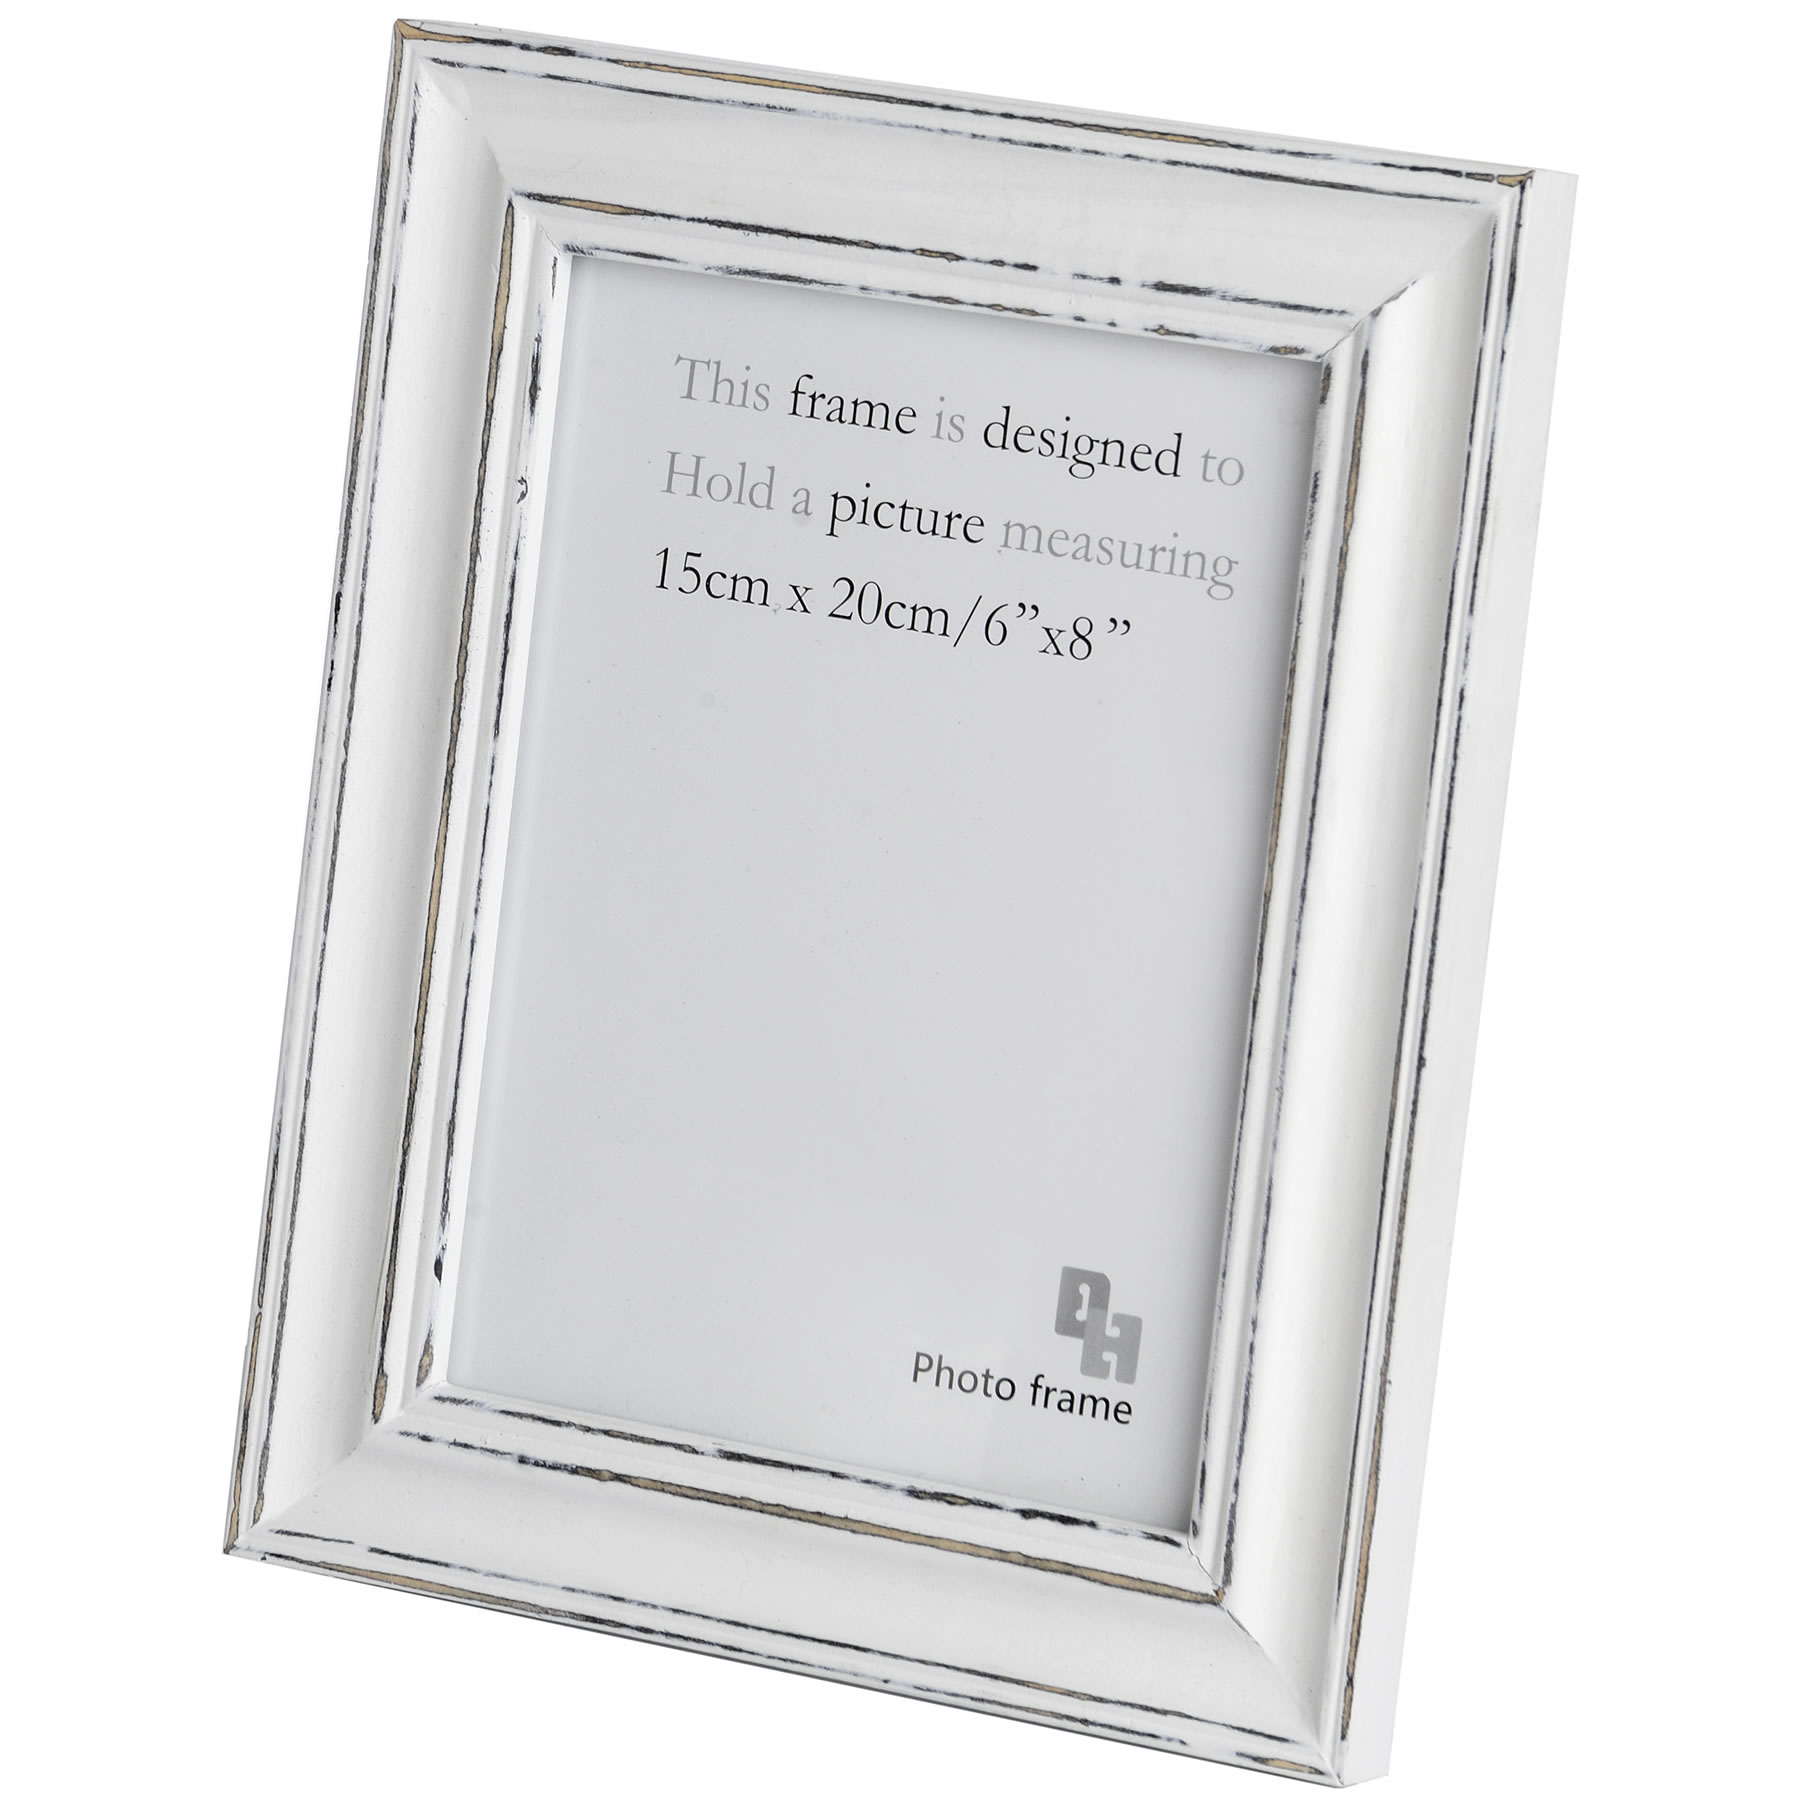 6 x 8 inch antique white photo frame from hill interiors. Black Bedroom Furniture Sets. Home Design Ideas